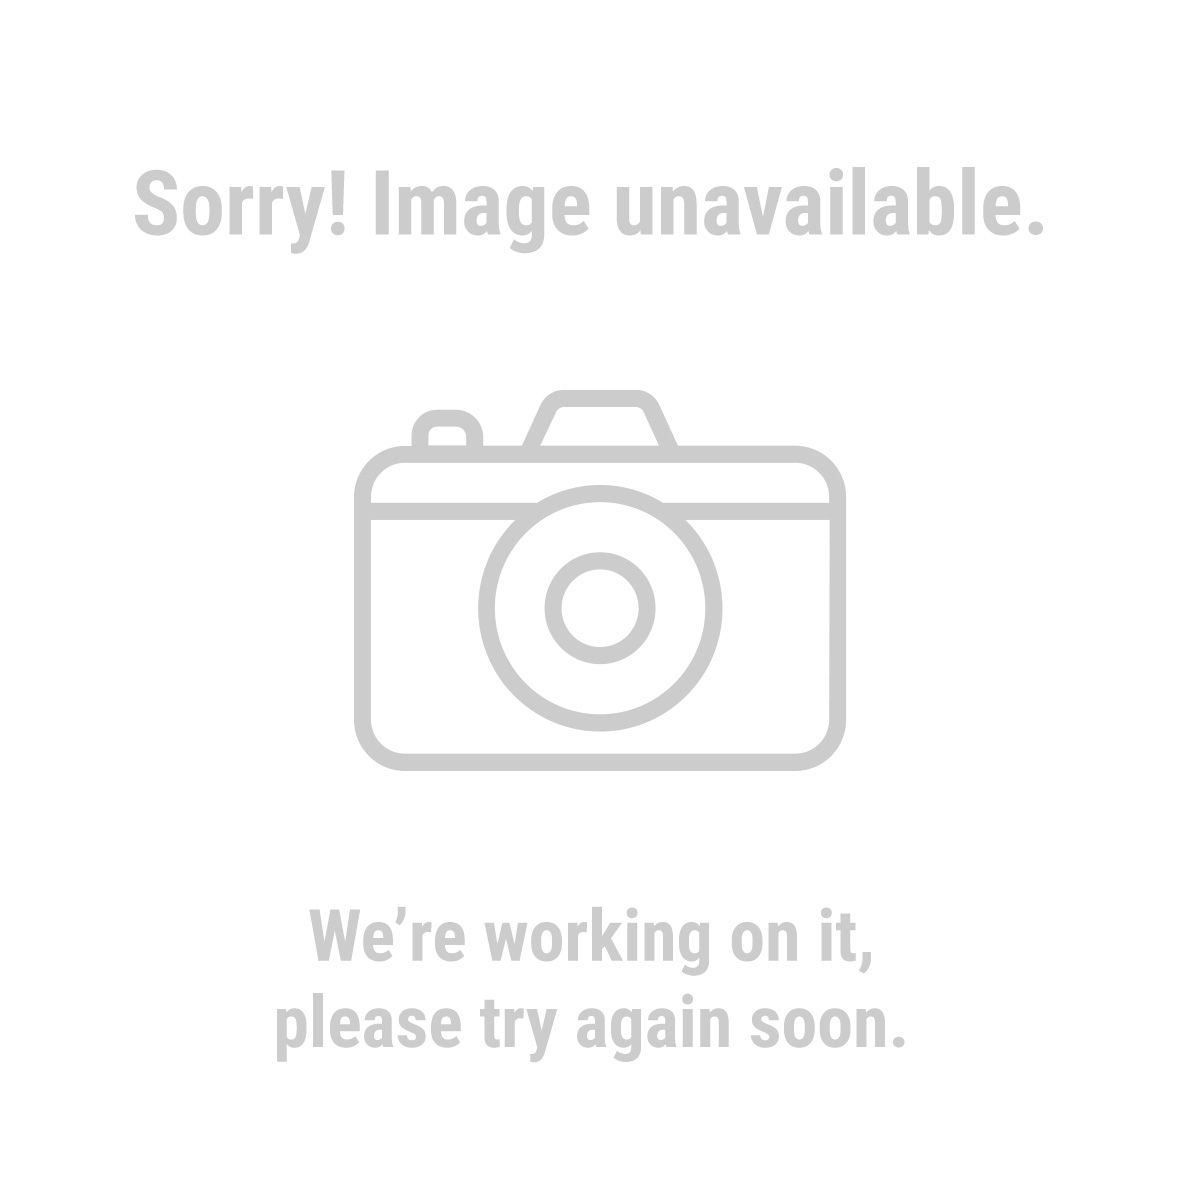 image_20969 3 gal 1 3 hp 100 psi oilless pancake air compressor  at webbmarketing.co